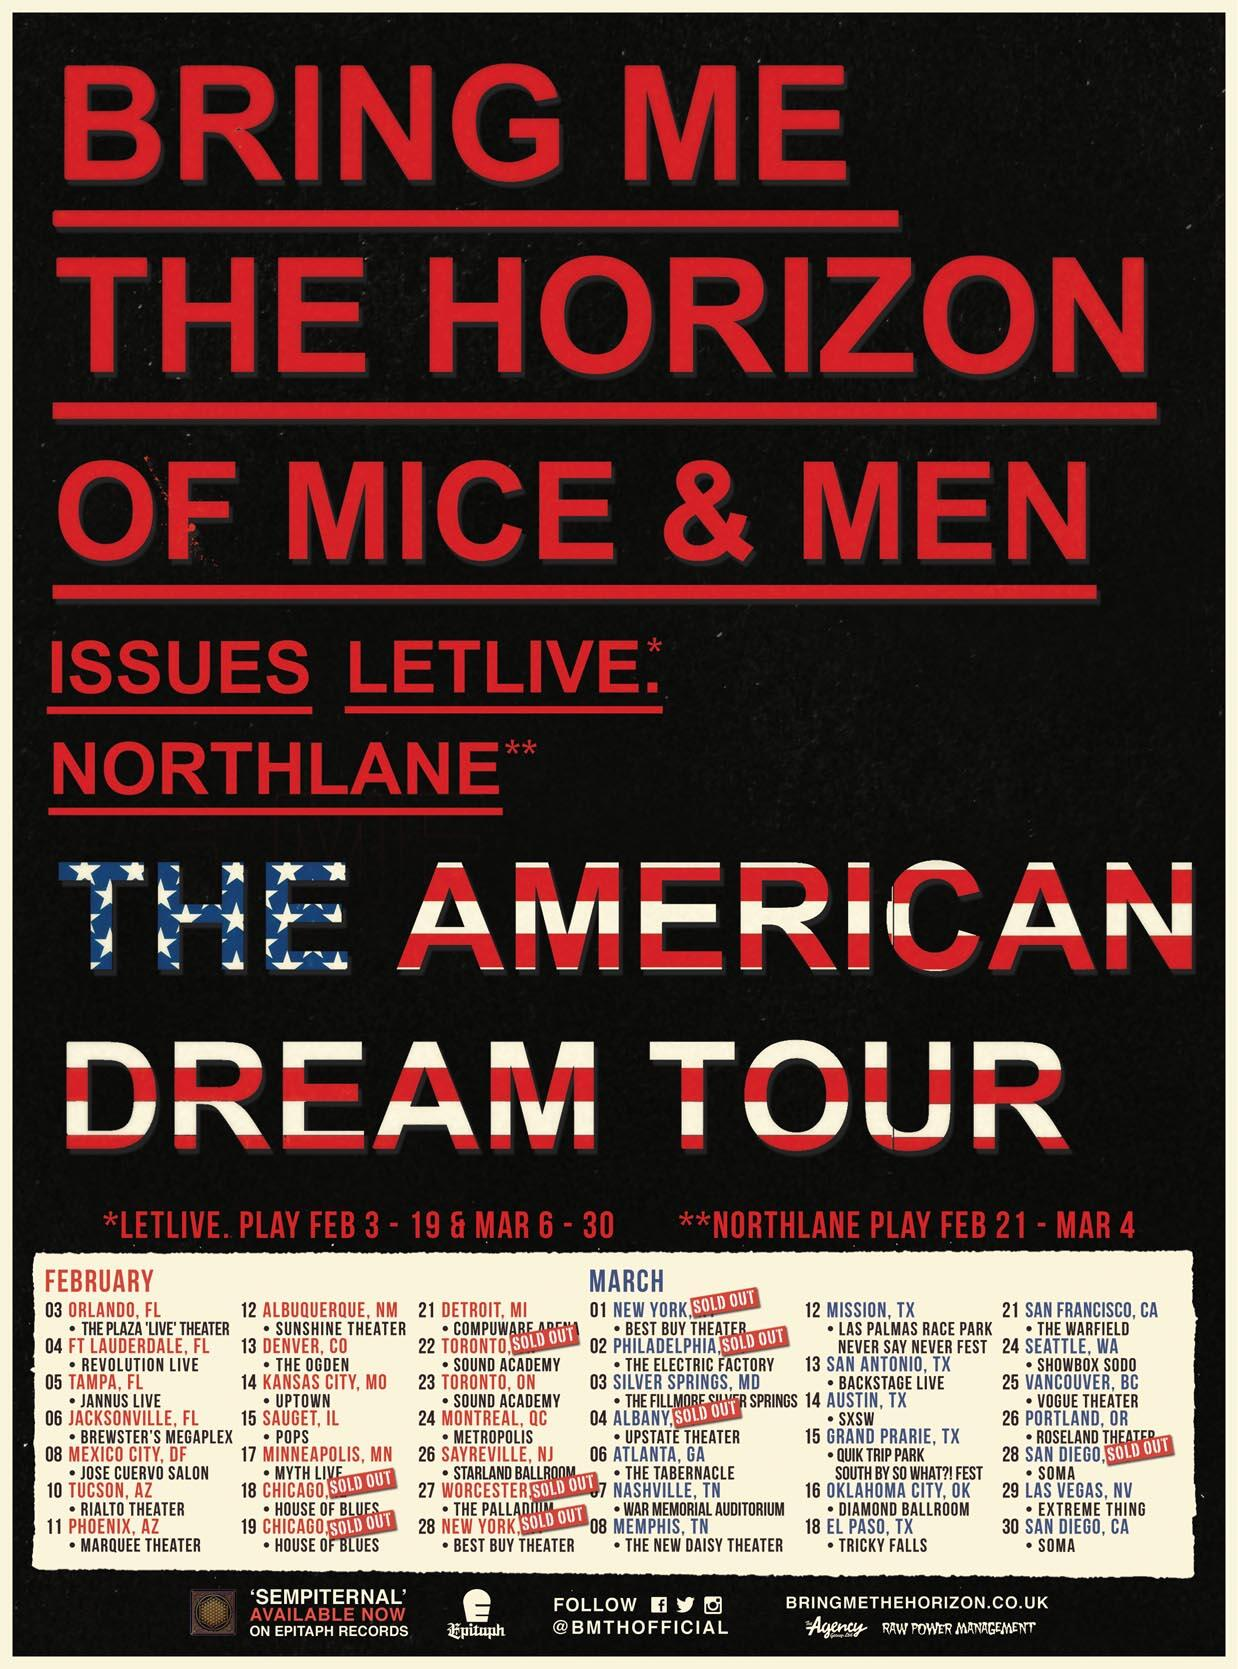 Issues, letlive. added to Bring Me The Horizon, Of Mice & Men tour - Alternative Press